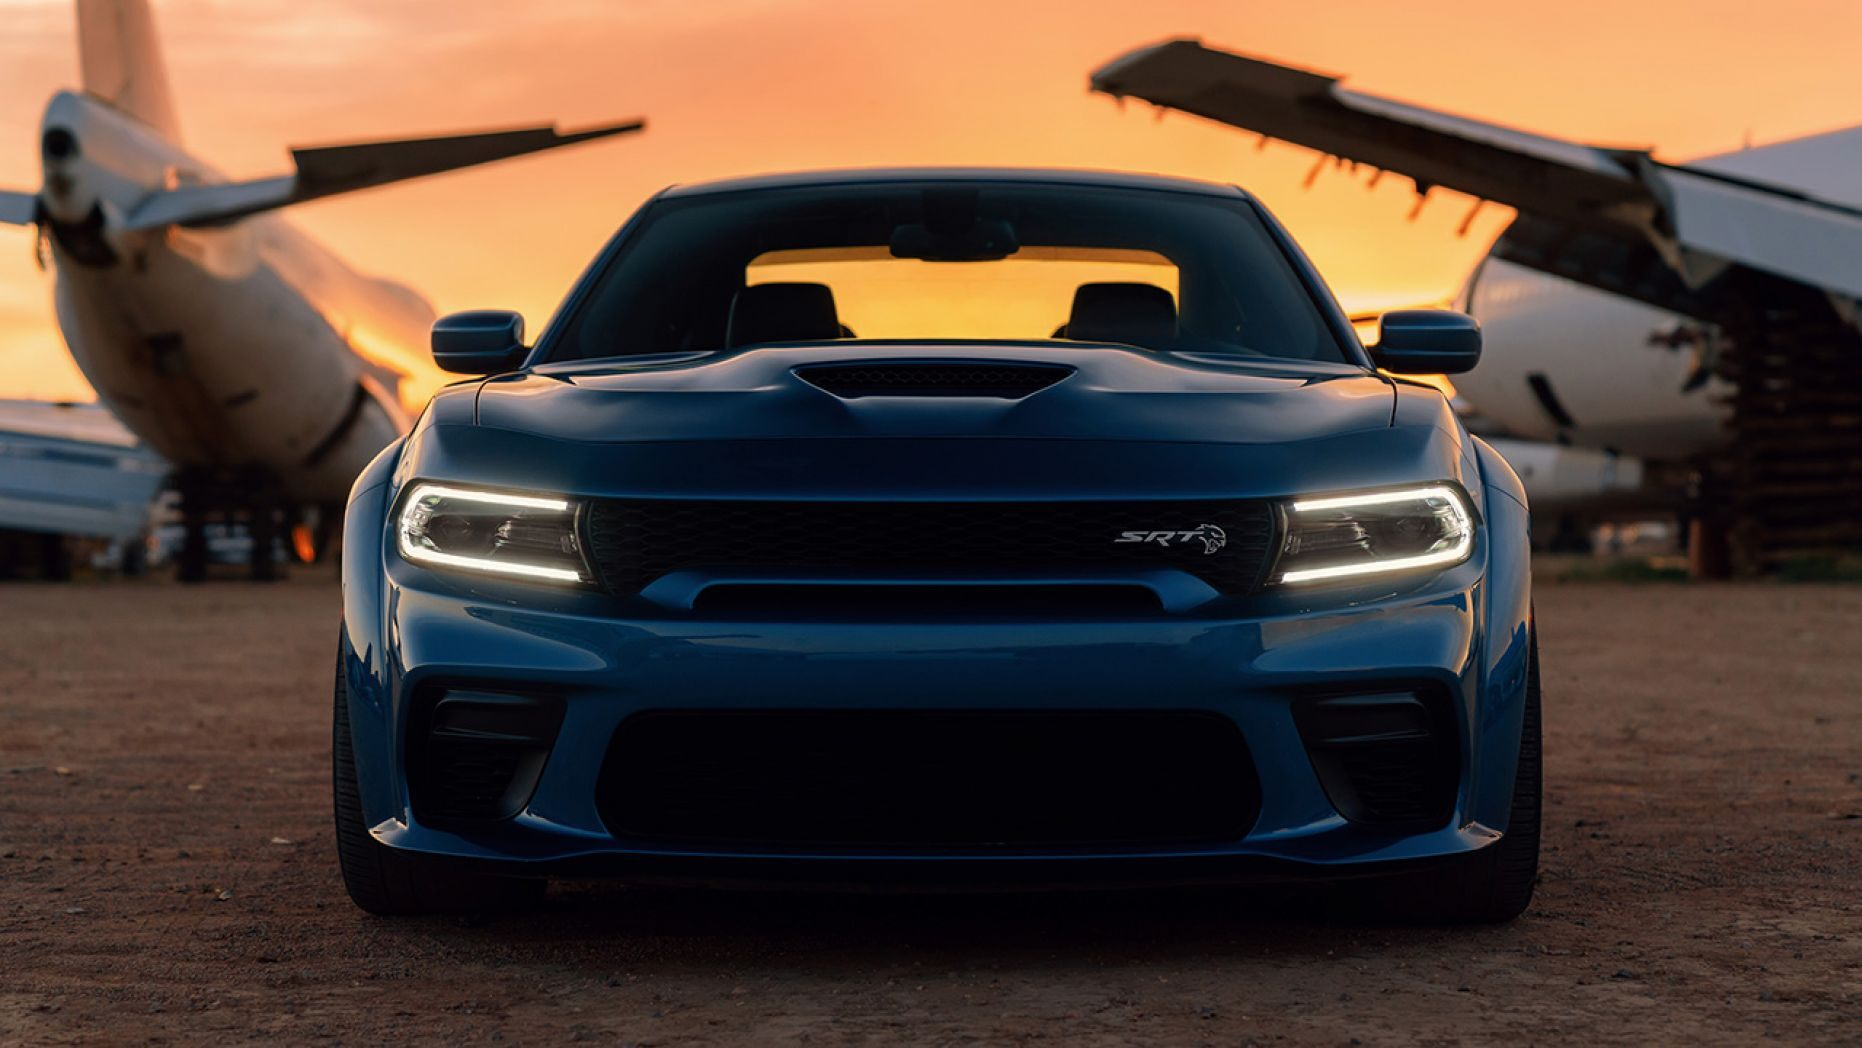 2020 Dodge Charger Hellcat Widebody Revealed: A Four-Door Steamroller